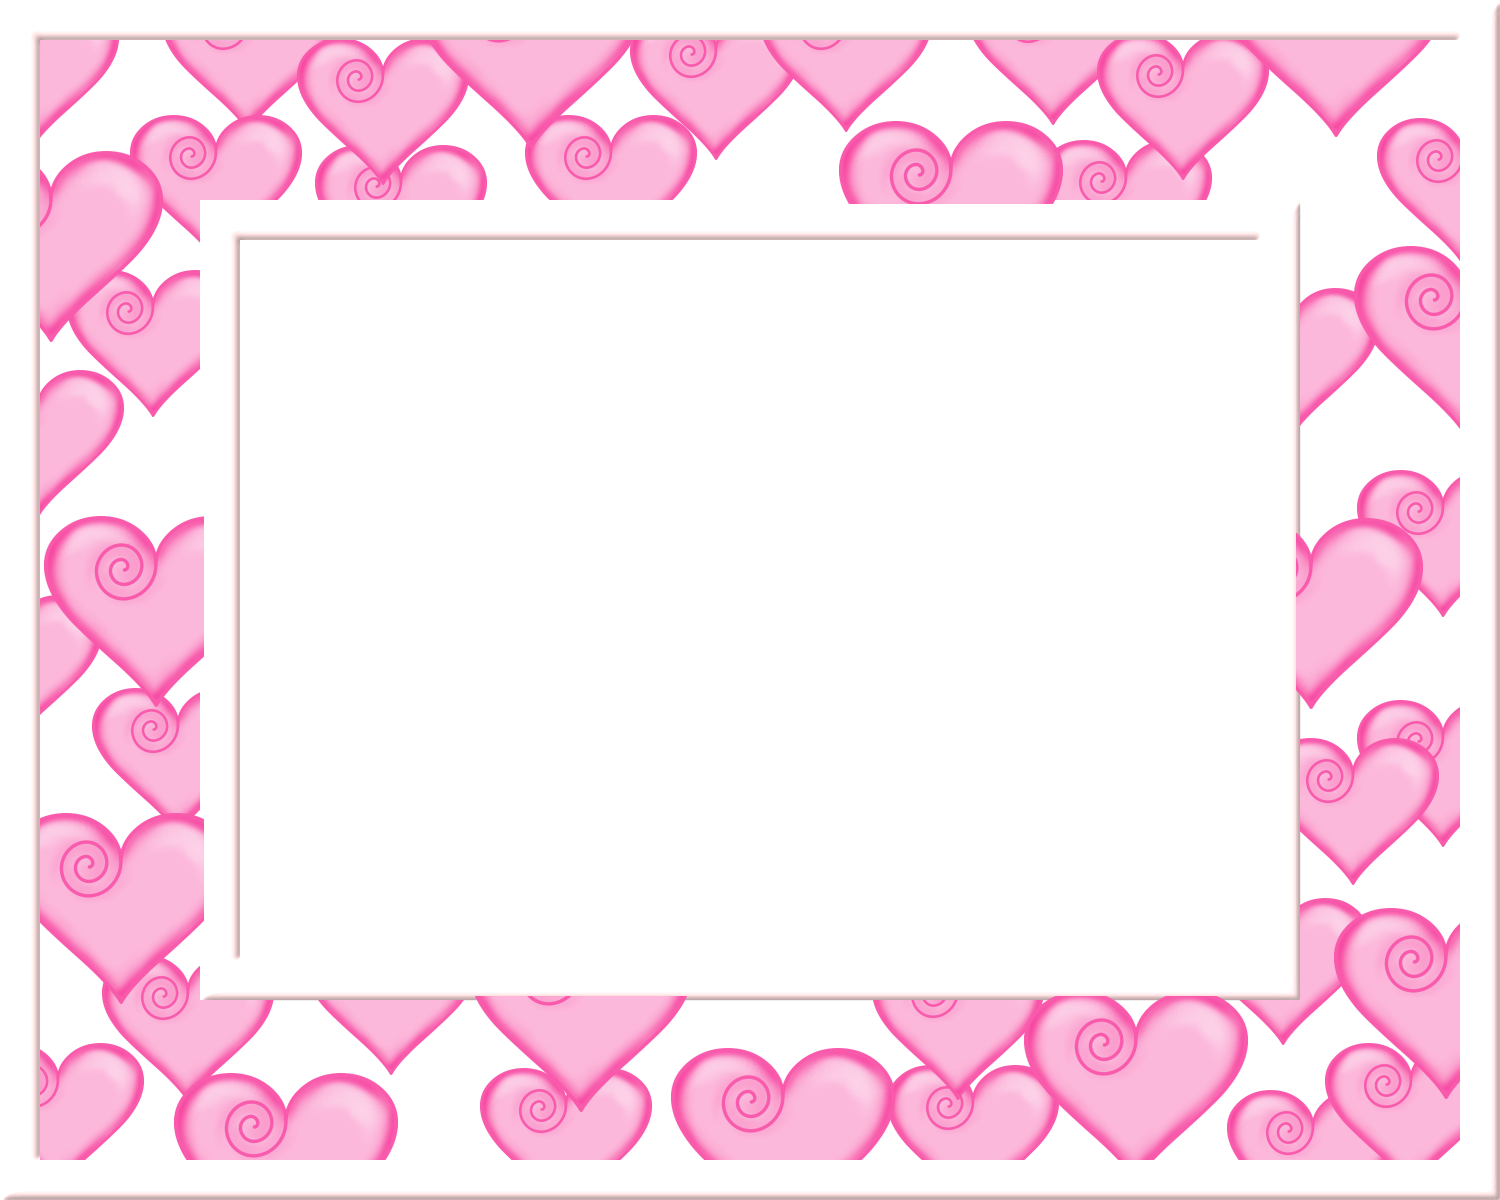 Sweet 16 Hearts: Free Printable Frames, Borders and Labels ...